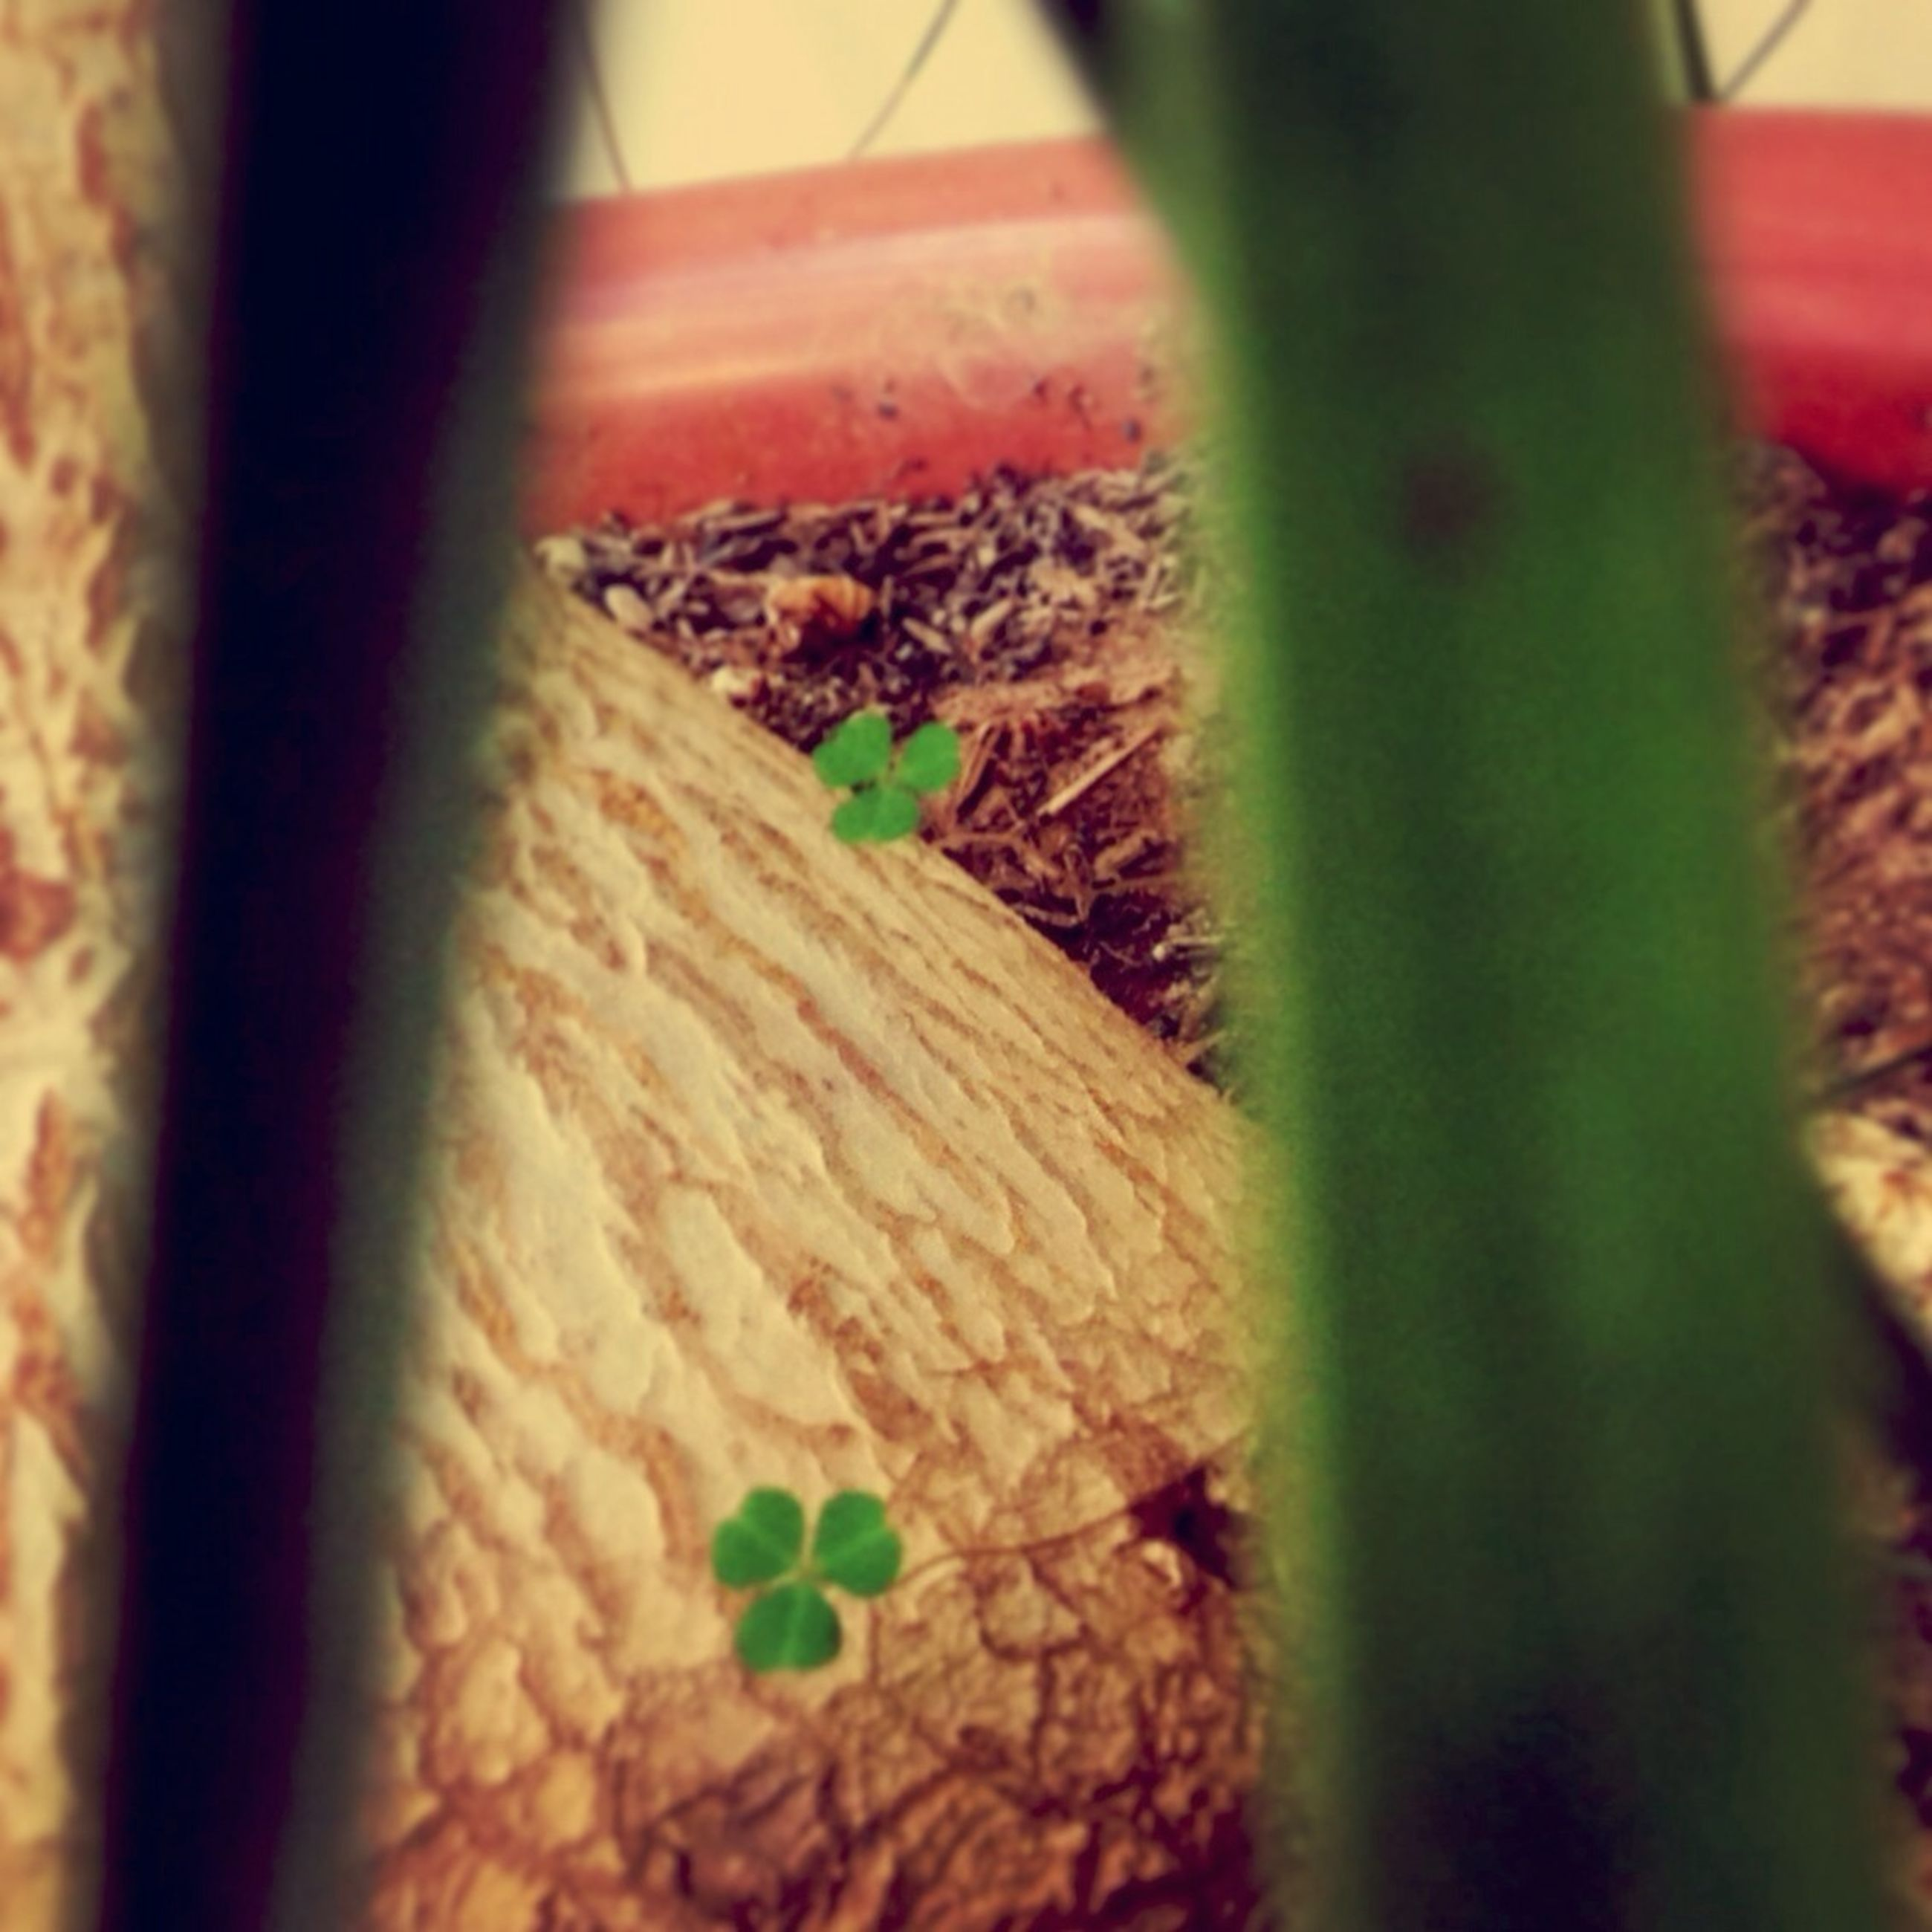 selective focus, close-up, plant, leaf, growth, green color, focus on foreground, nature, day, no people, high angle view, indoors, sunlight, potted plant, green, freshness, wood - material, abandoned, damaged